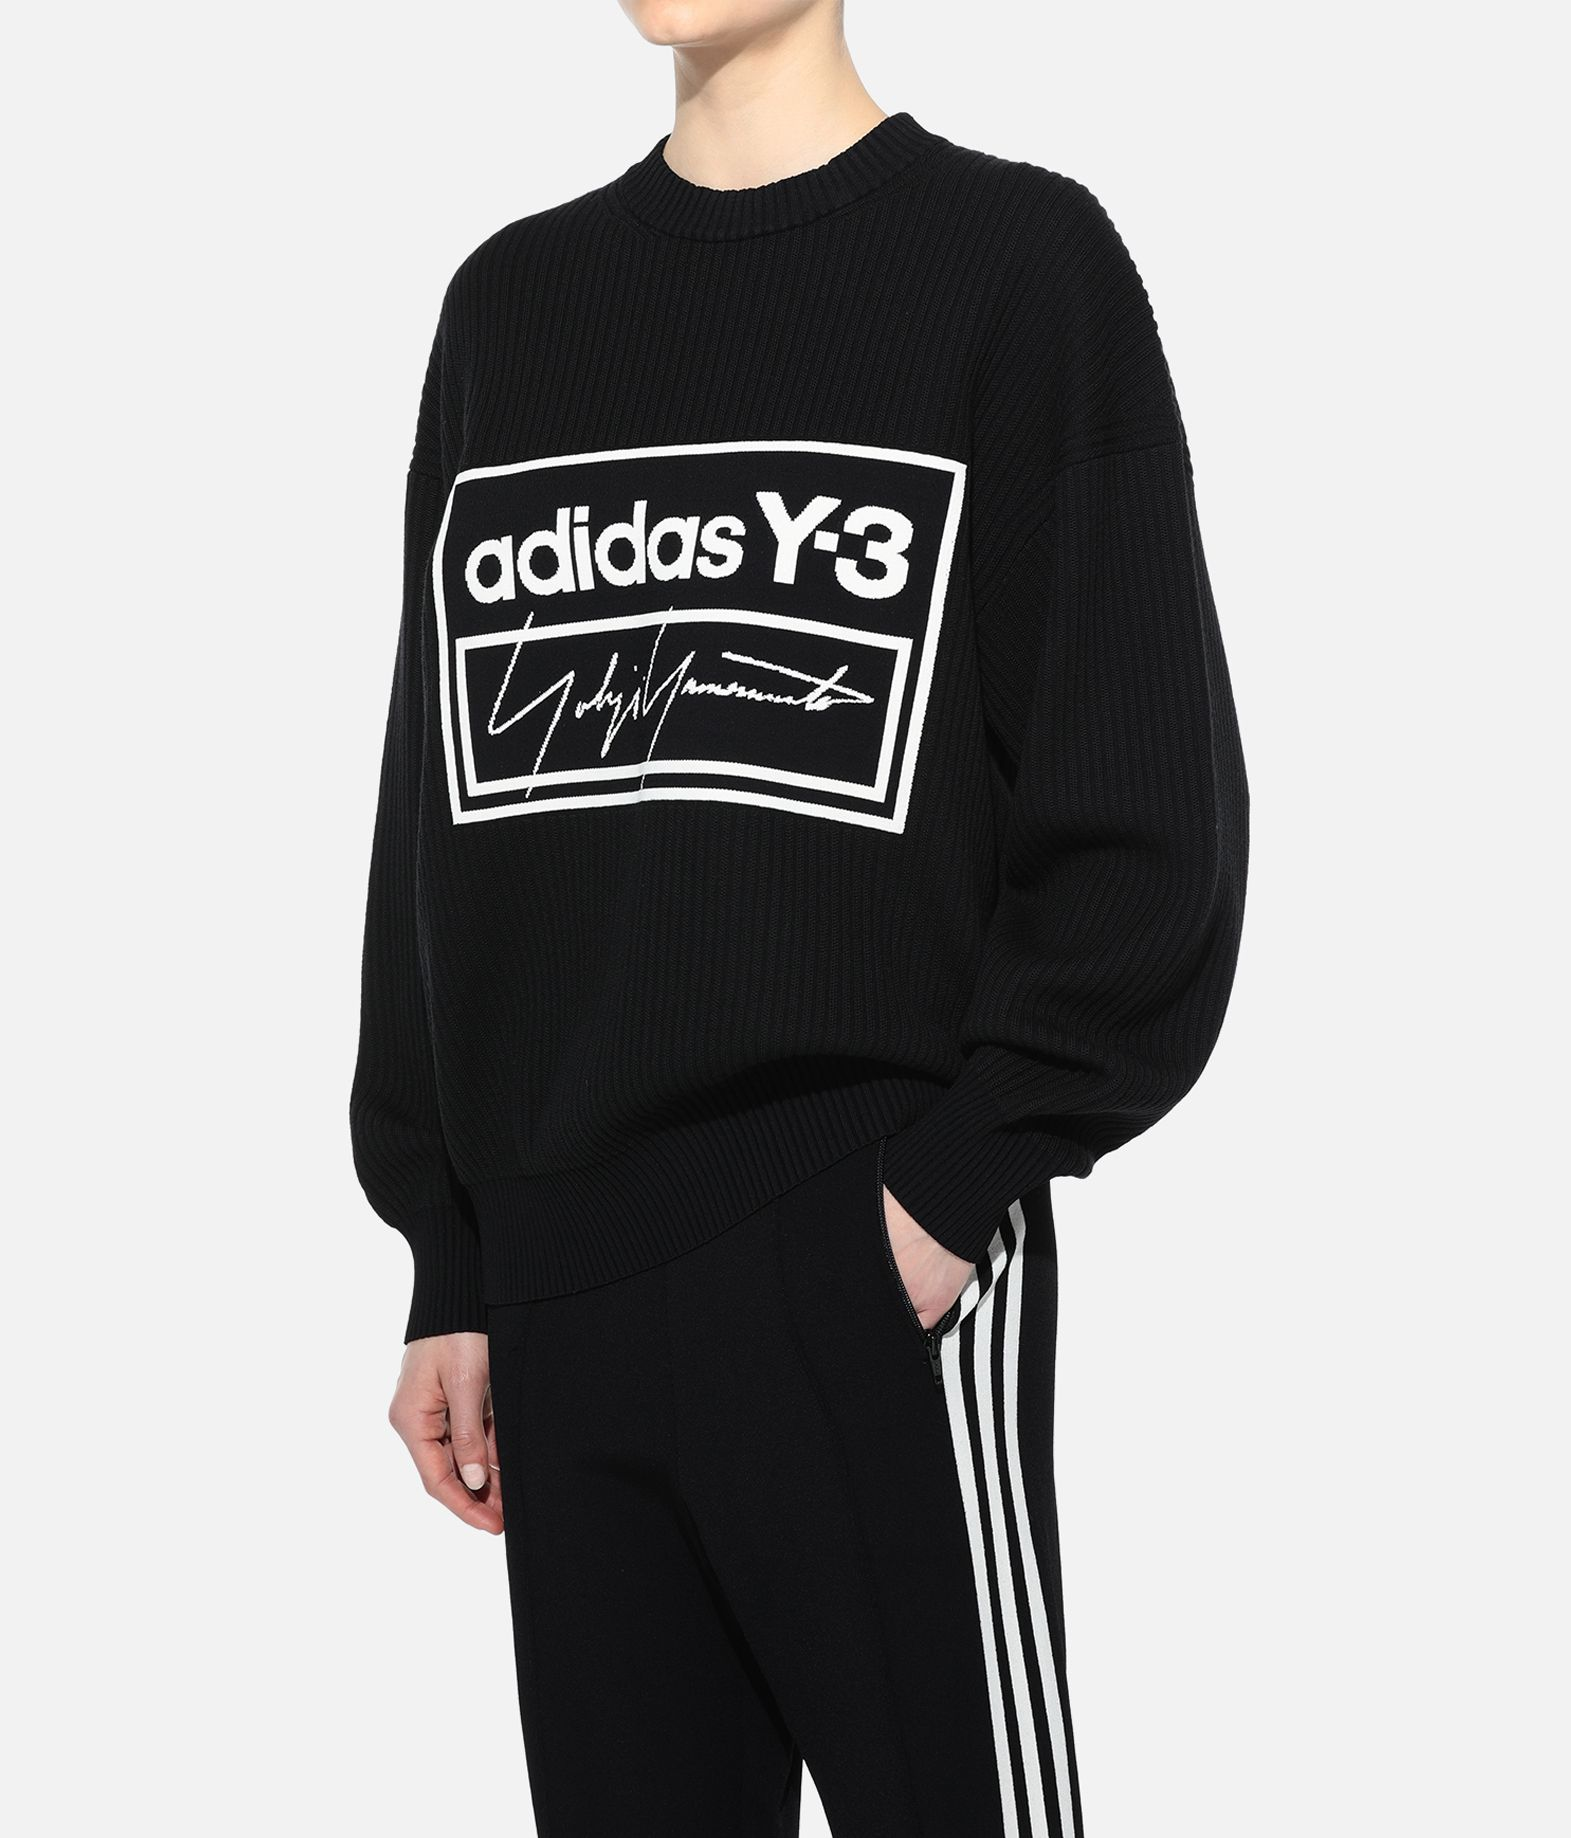 Y-3 Y-3 Tech Knit Crew Sweatshirt Long sleeve jumper Woman e